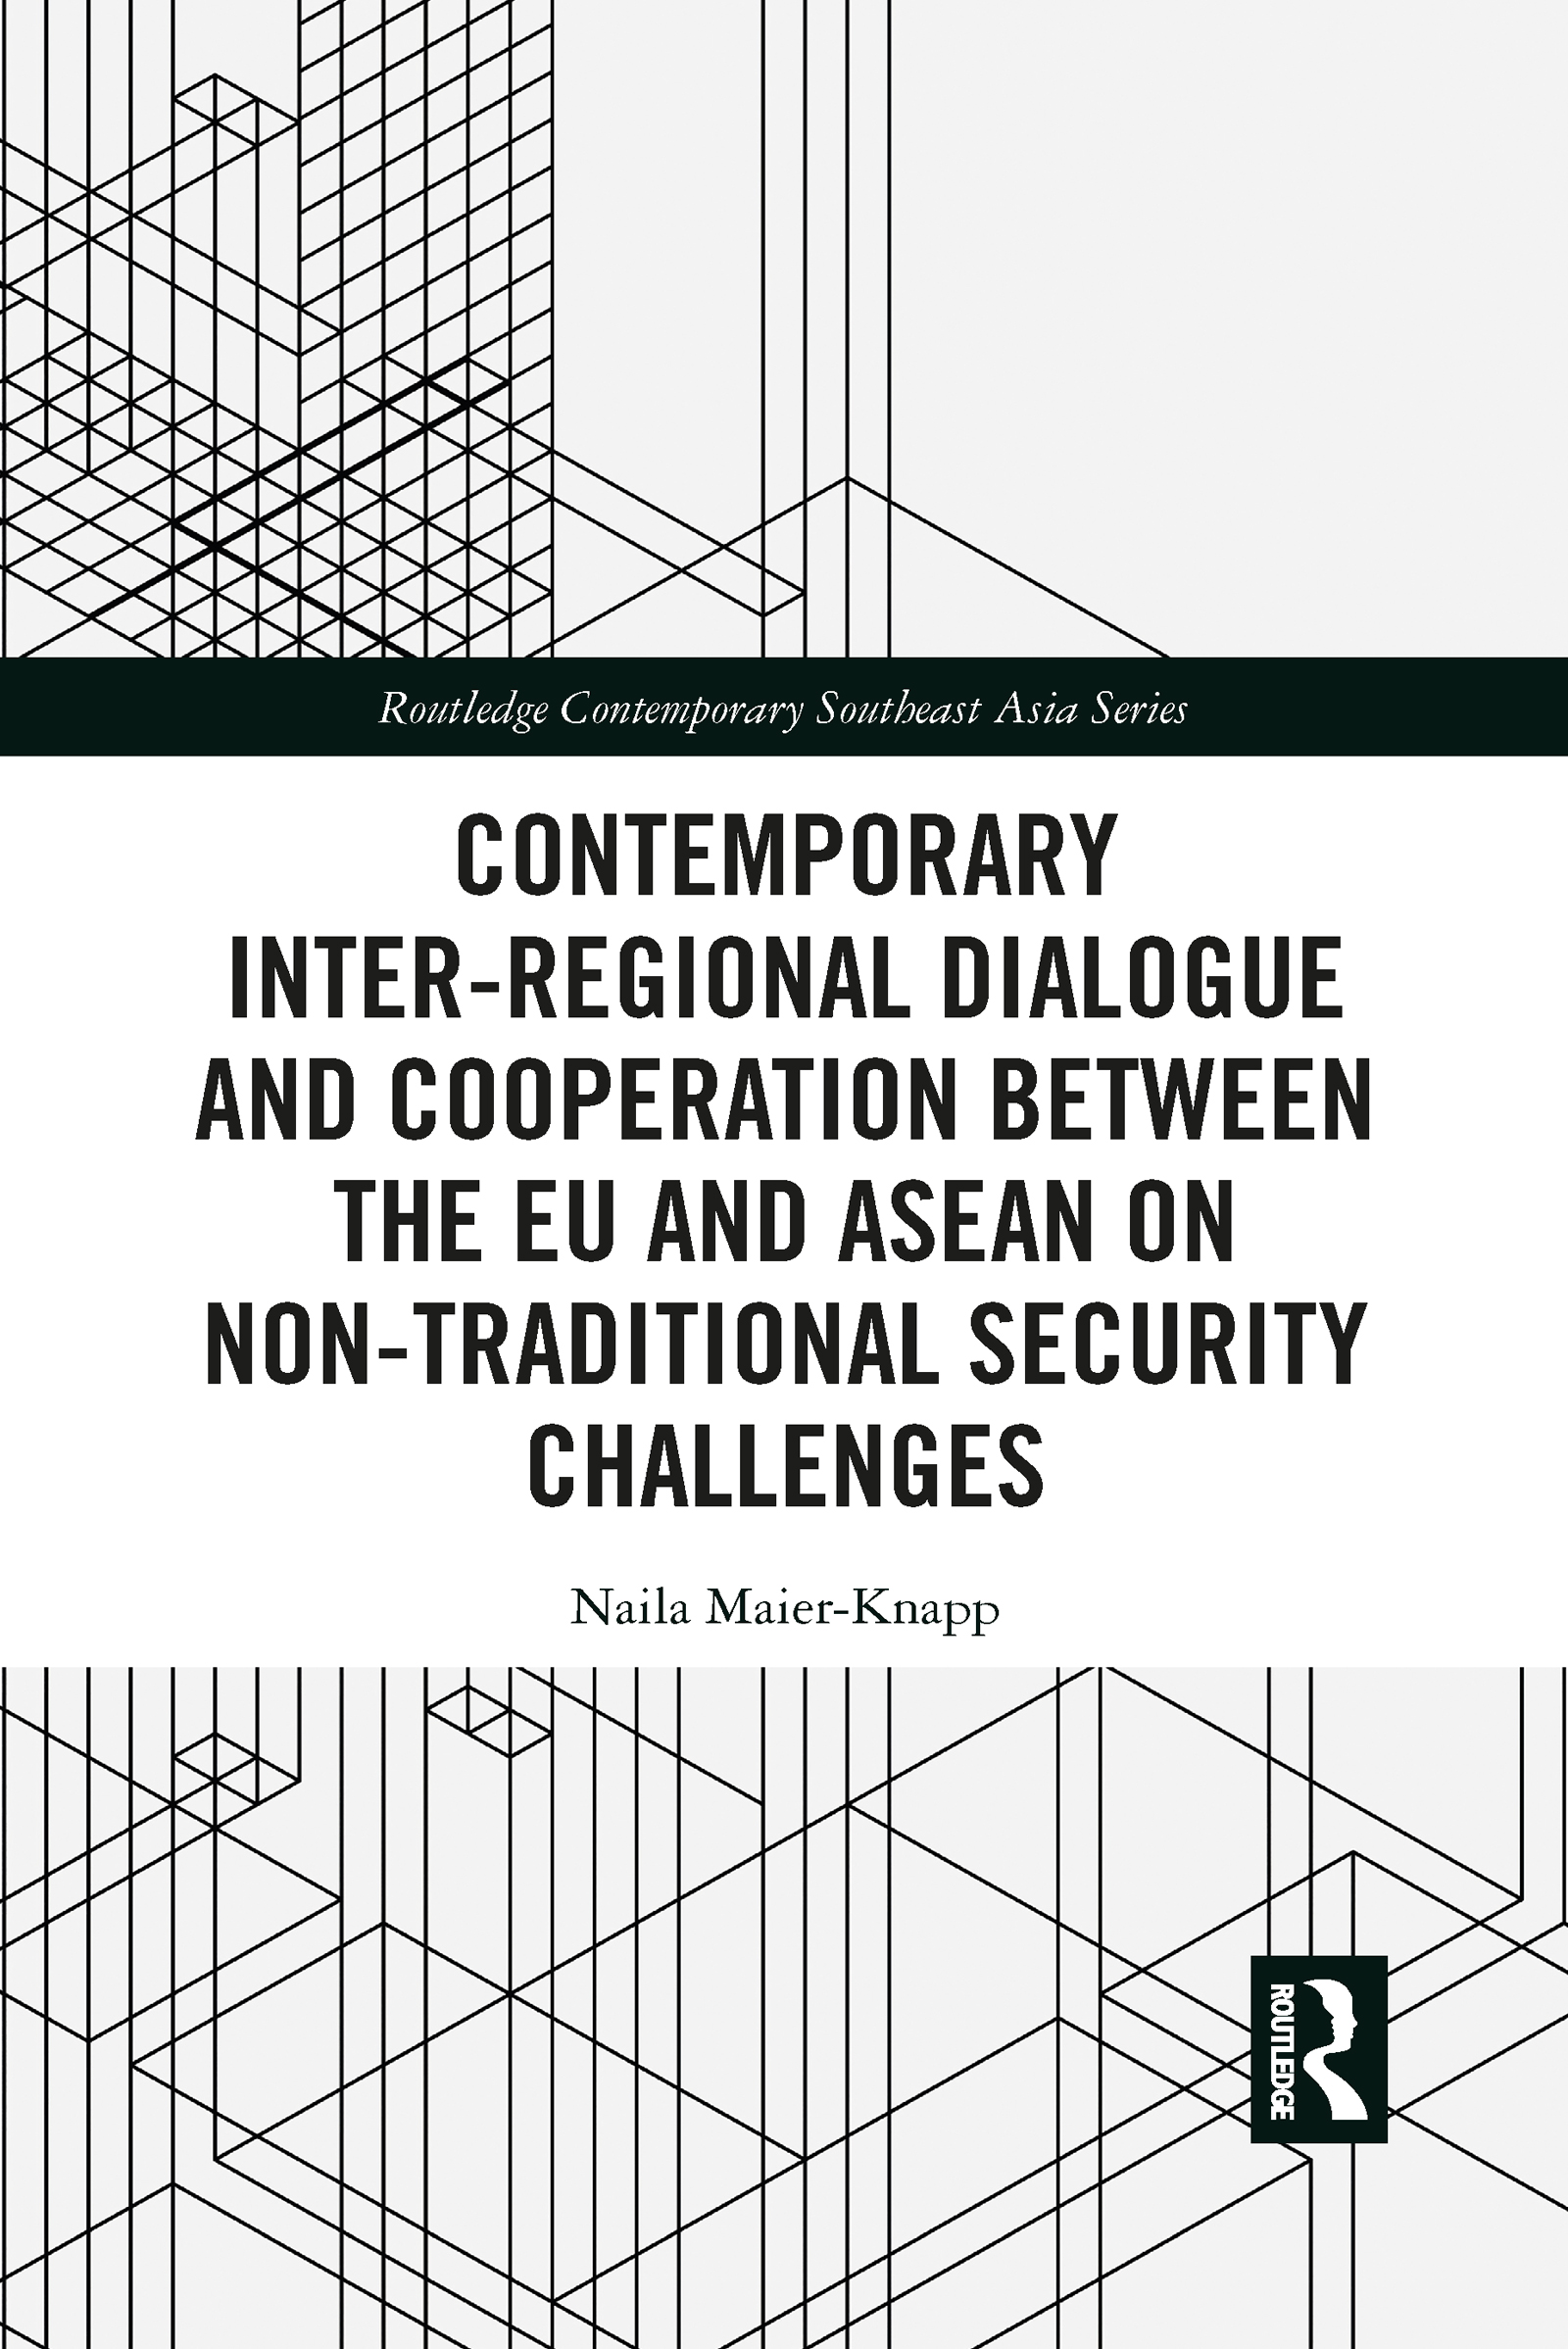 Contemporary Inter-regional Dialogue and Cooperation between the EU and ASEAN on Non-traditional Security Challenges